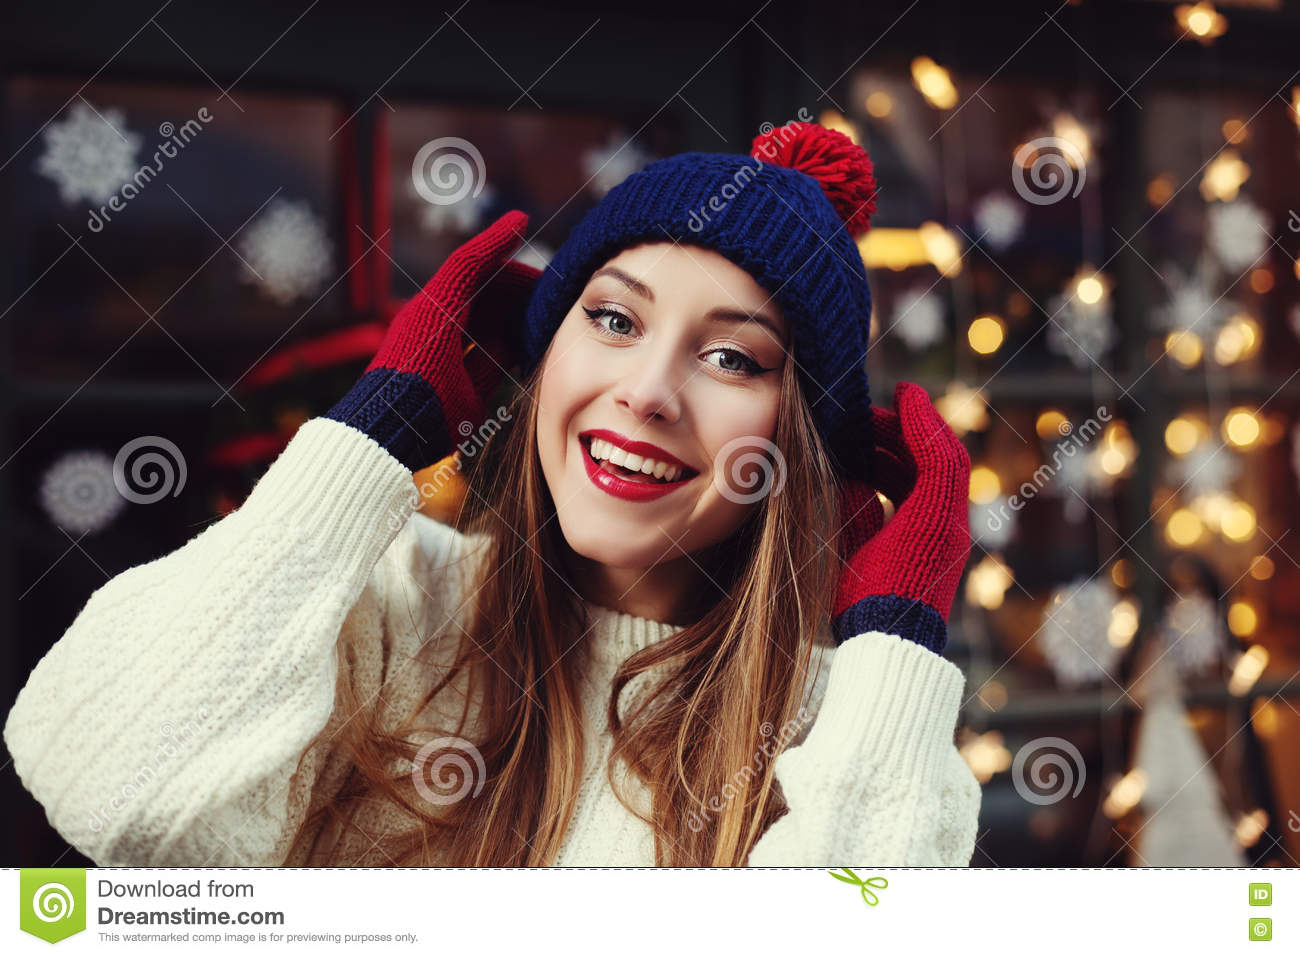 Street portrait of smiling beautiful young woman wearing stylish classic winter knitted clothes. Model looking at camera